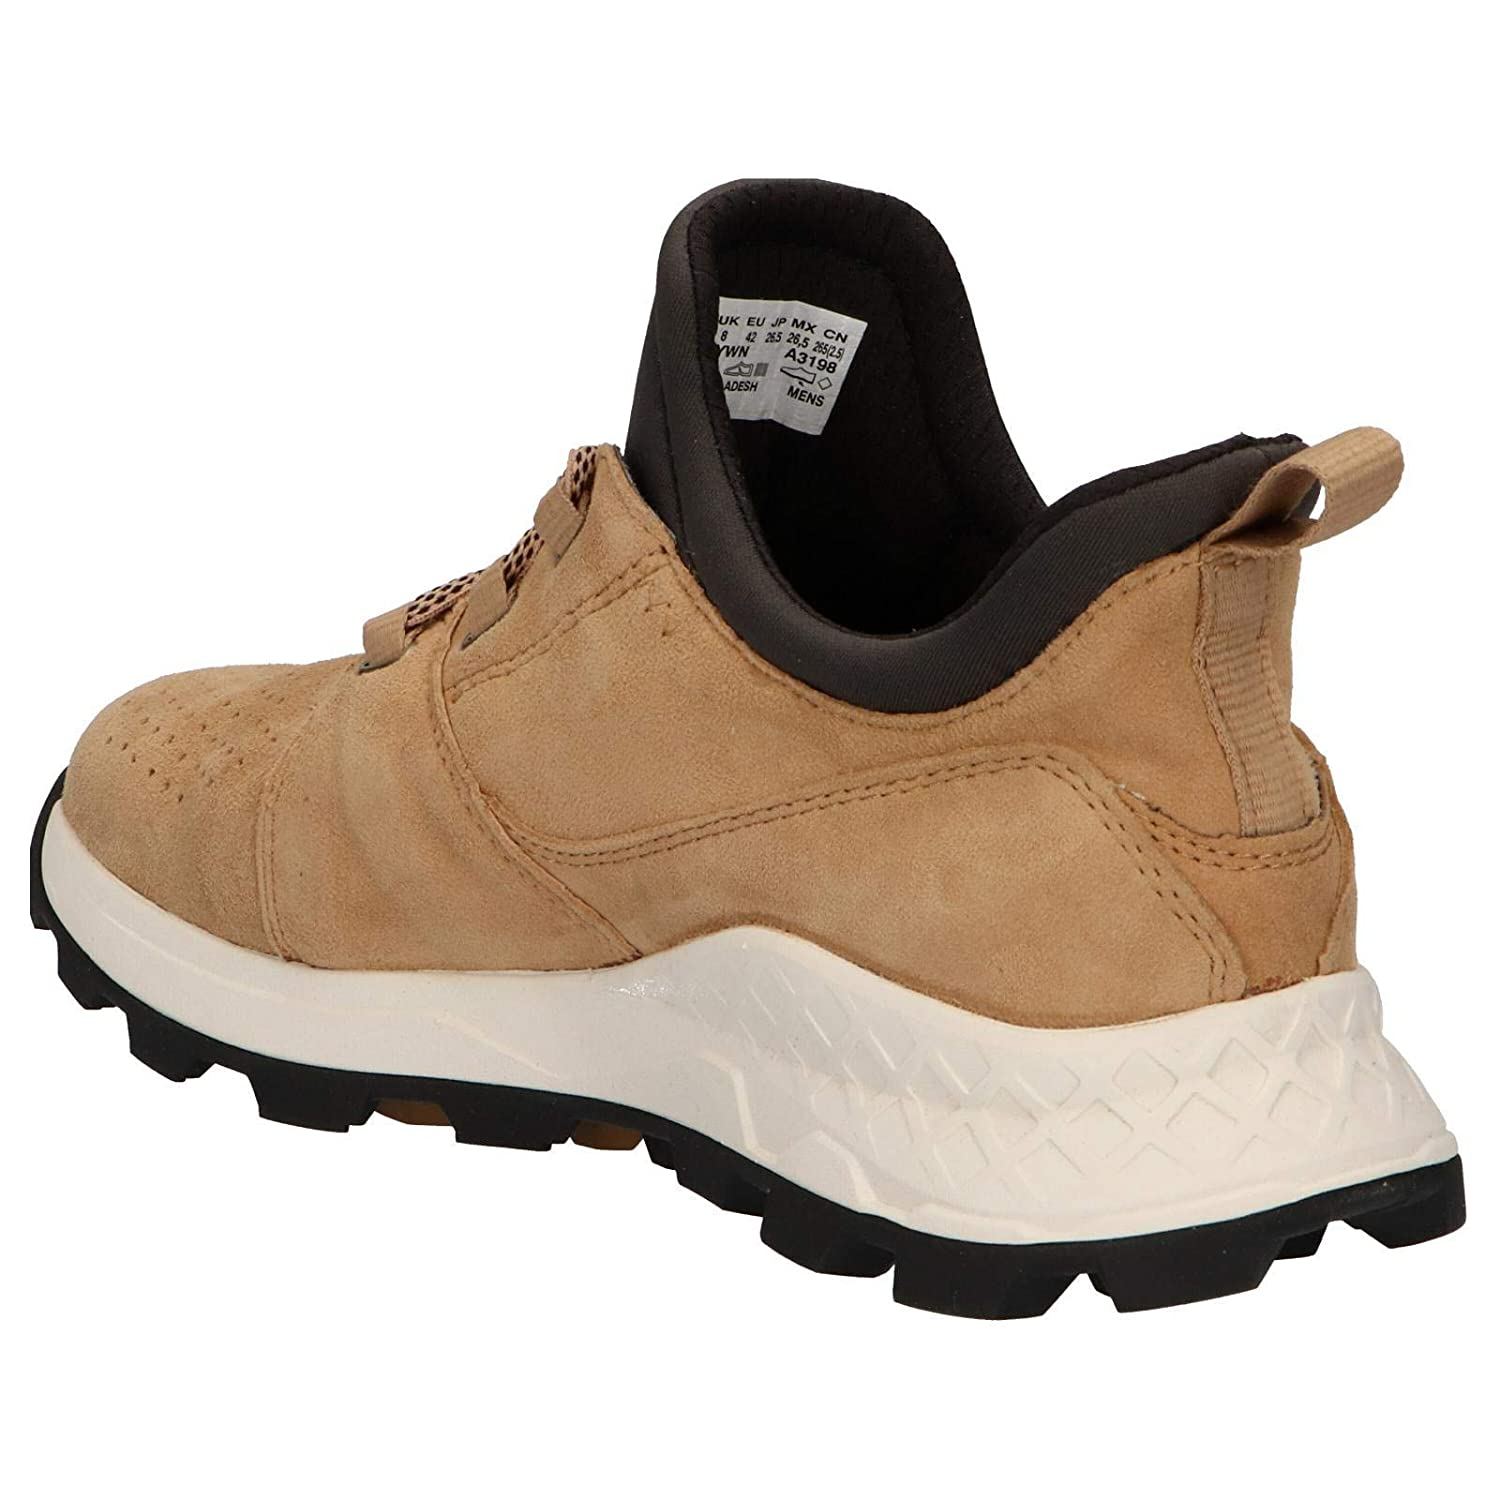 new collection good service clearance prices Timberland Men Sports Shoes A1YWN Brooklyn Medium Beige Size 41